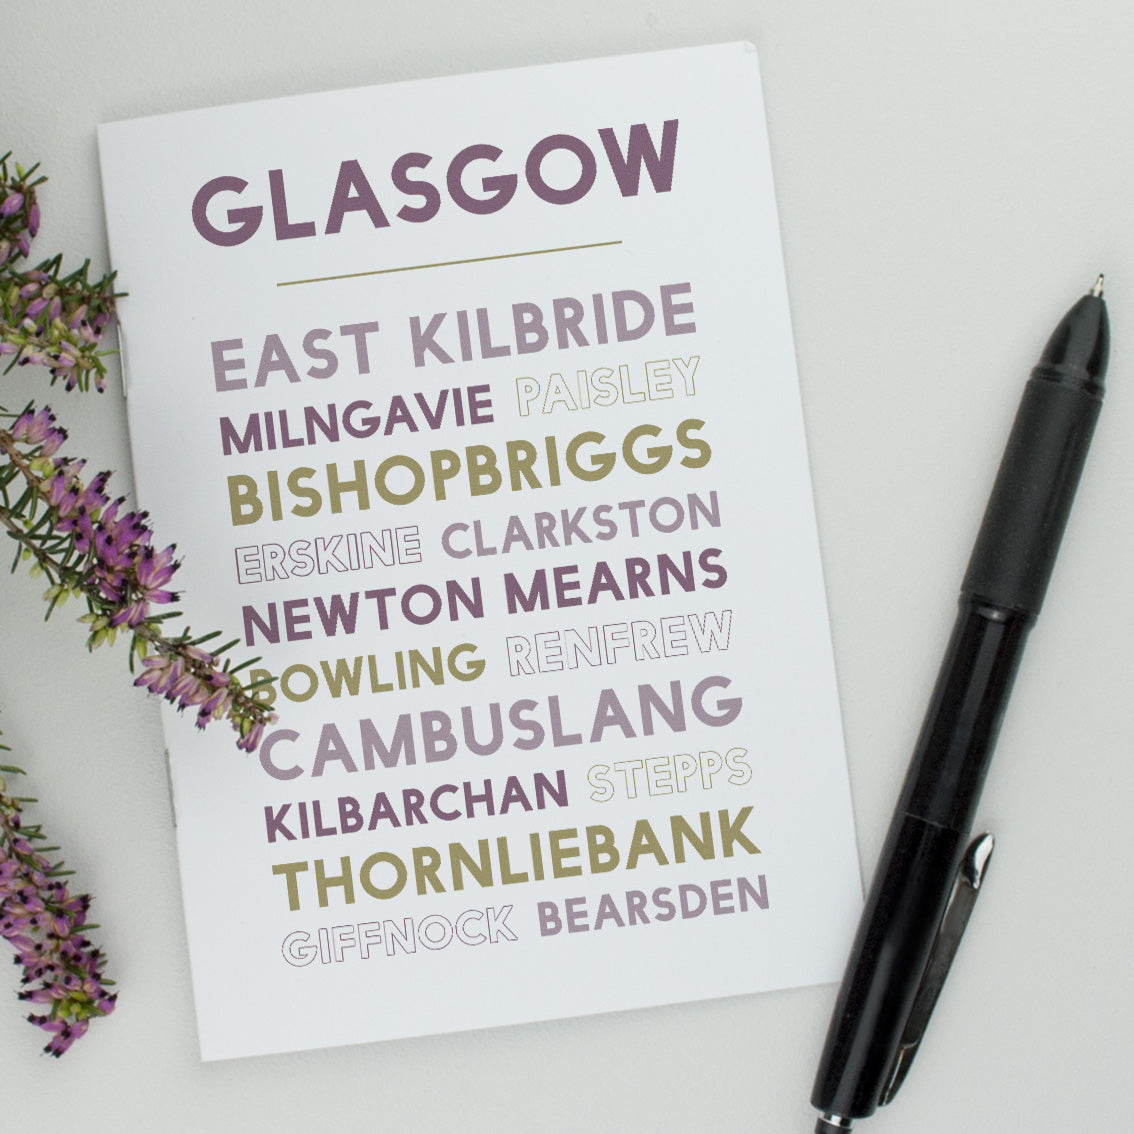 Greater Glasgow Notebook